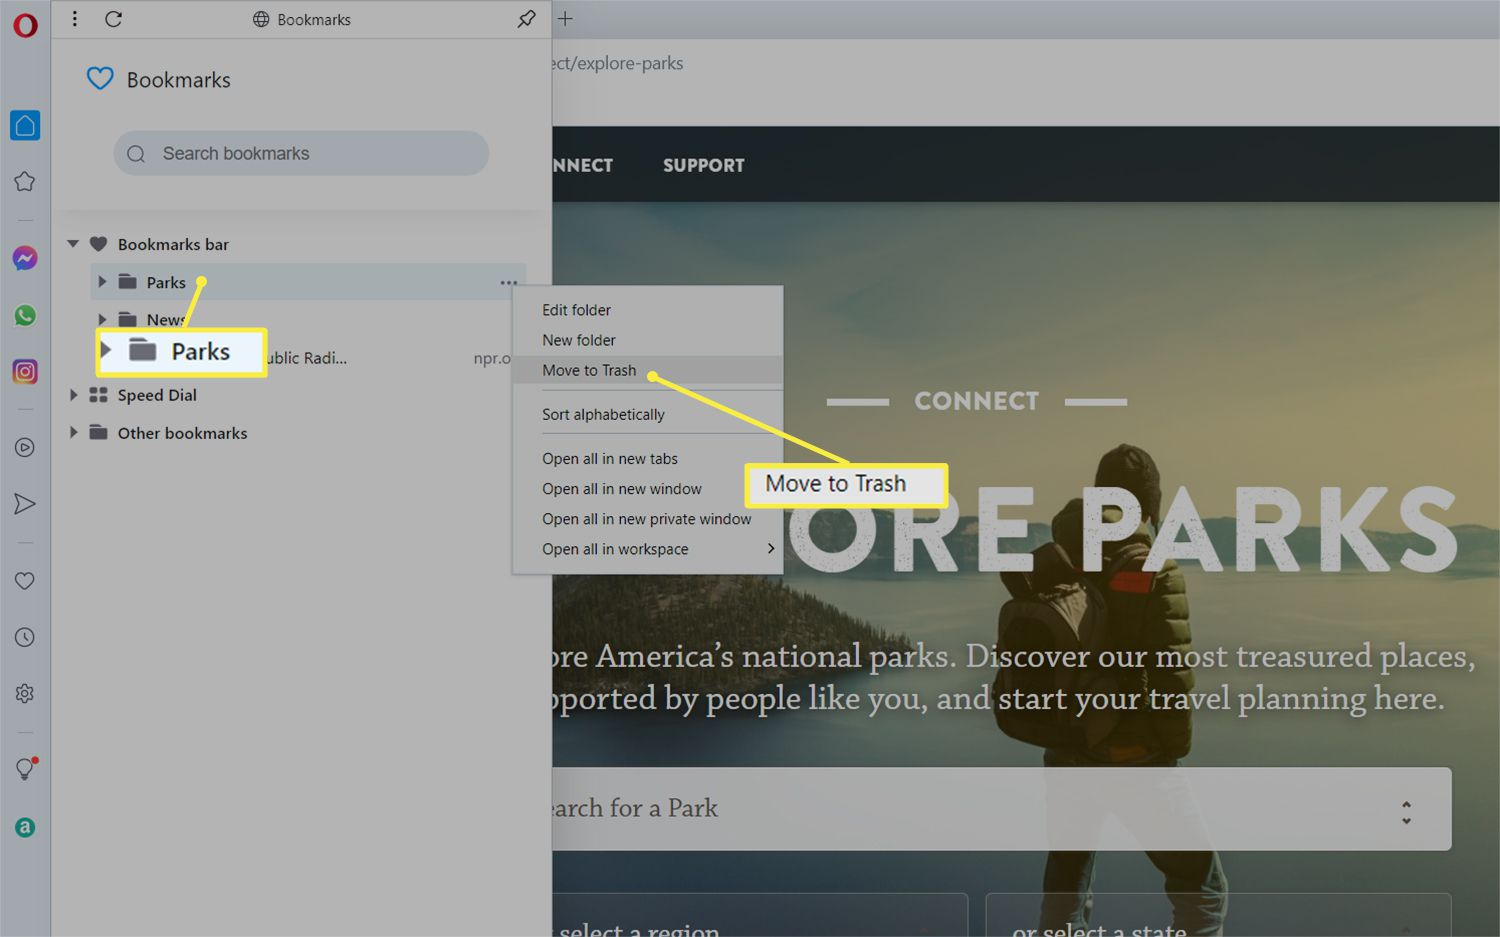 Folder highlighted with the Move to Trash option from the Bookmarks manager in the Opera web browser